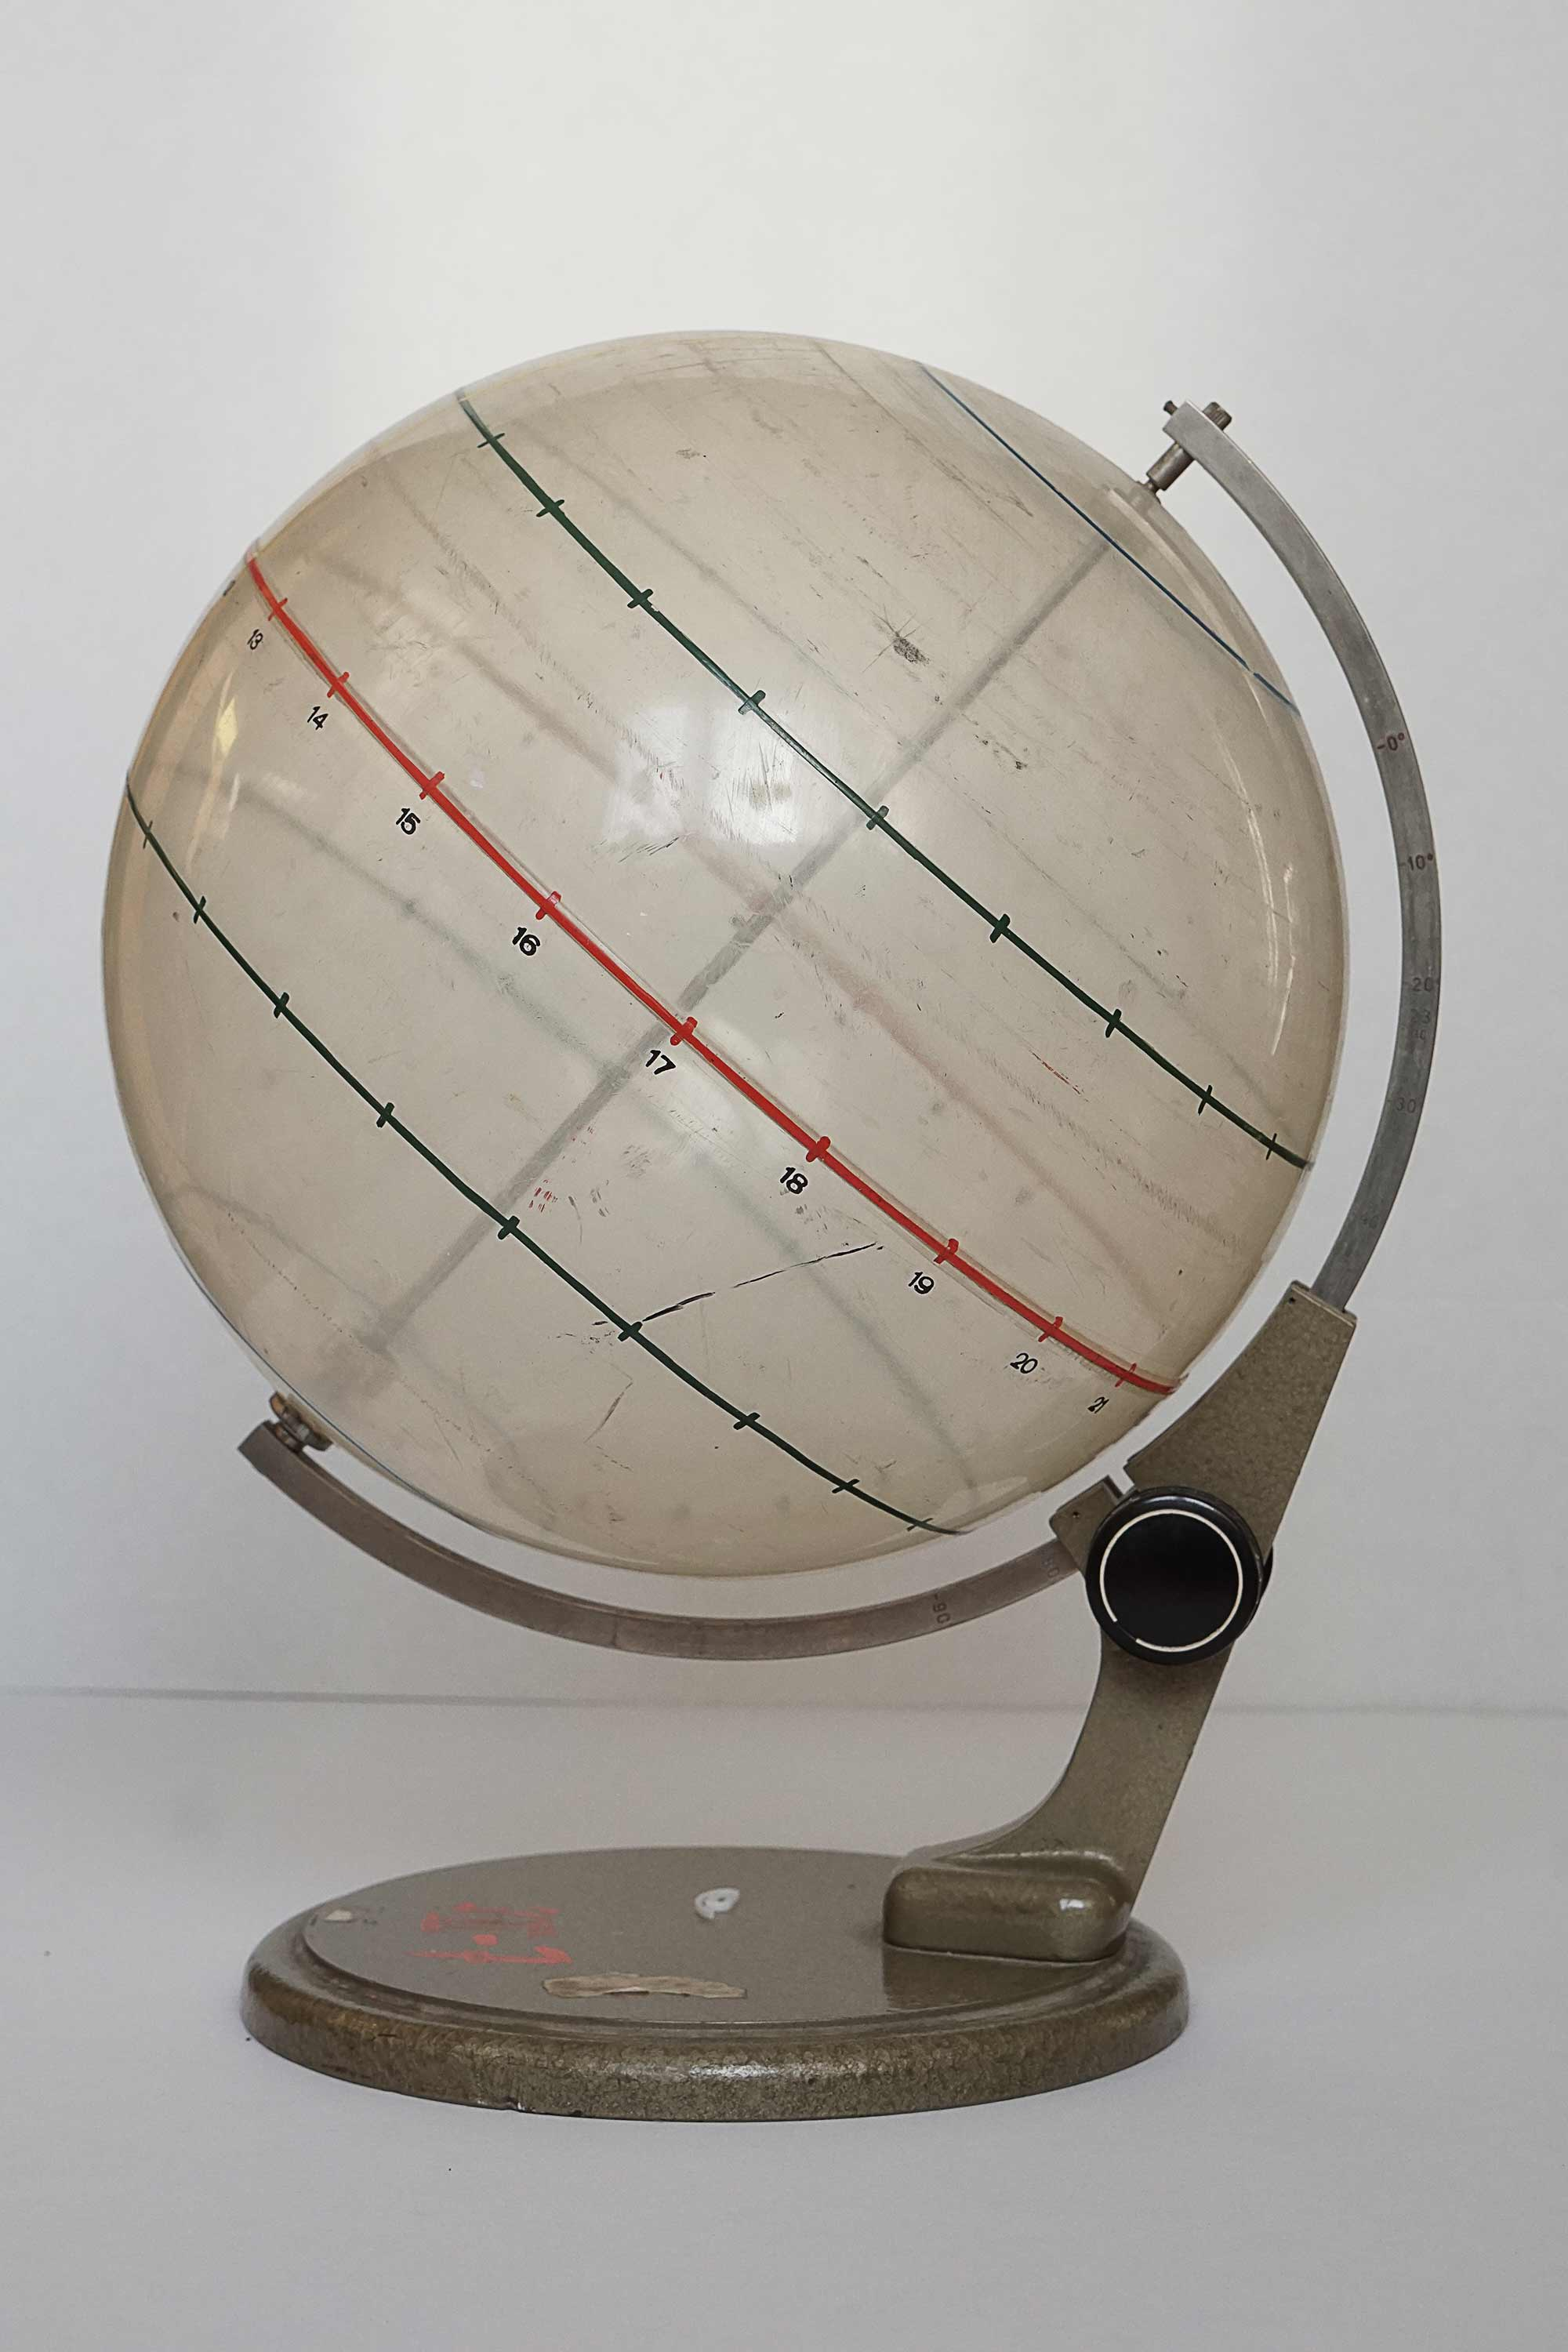 Unique tiltable educative glass model of earth for science lessons made in 1950's